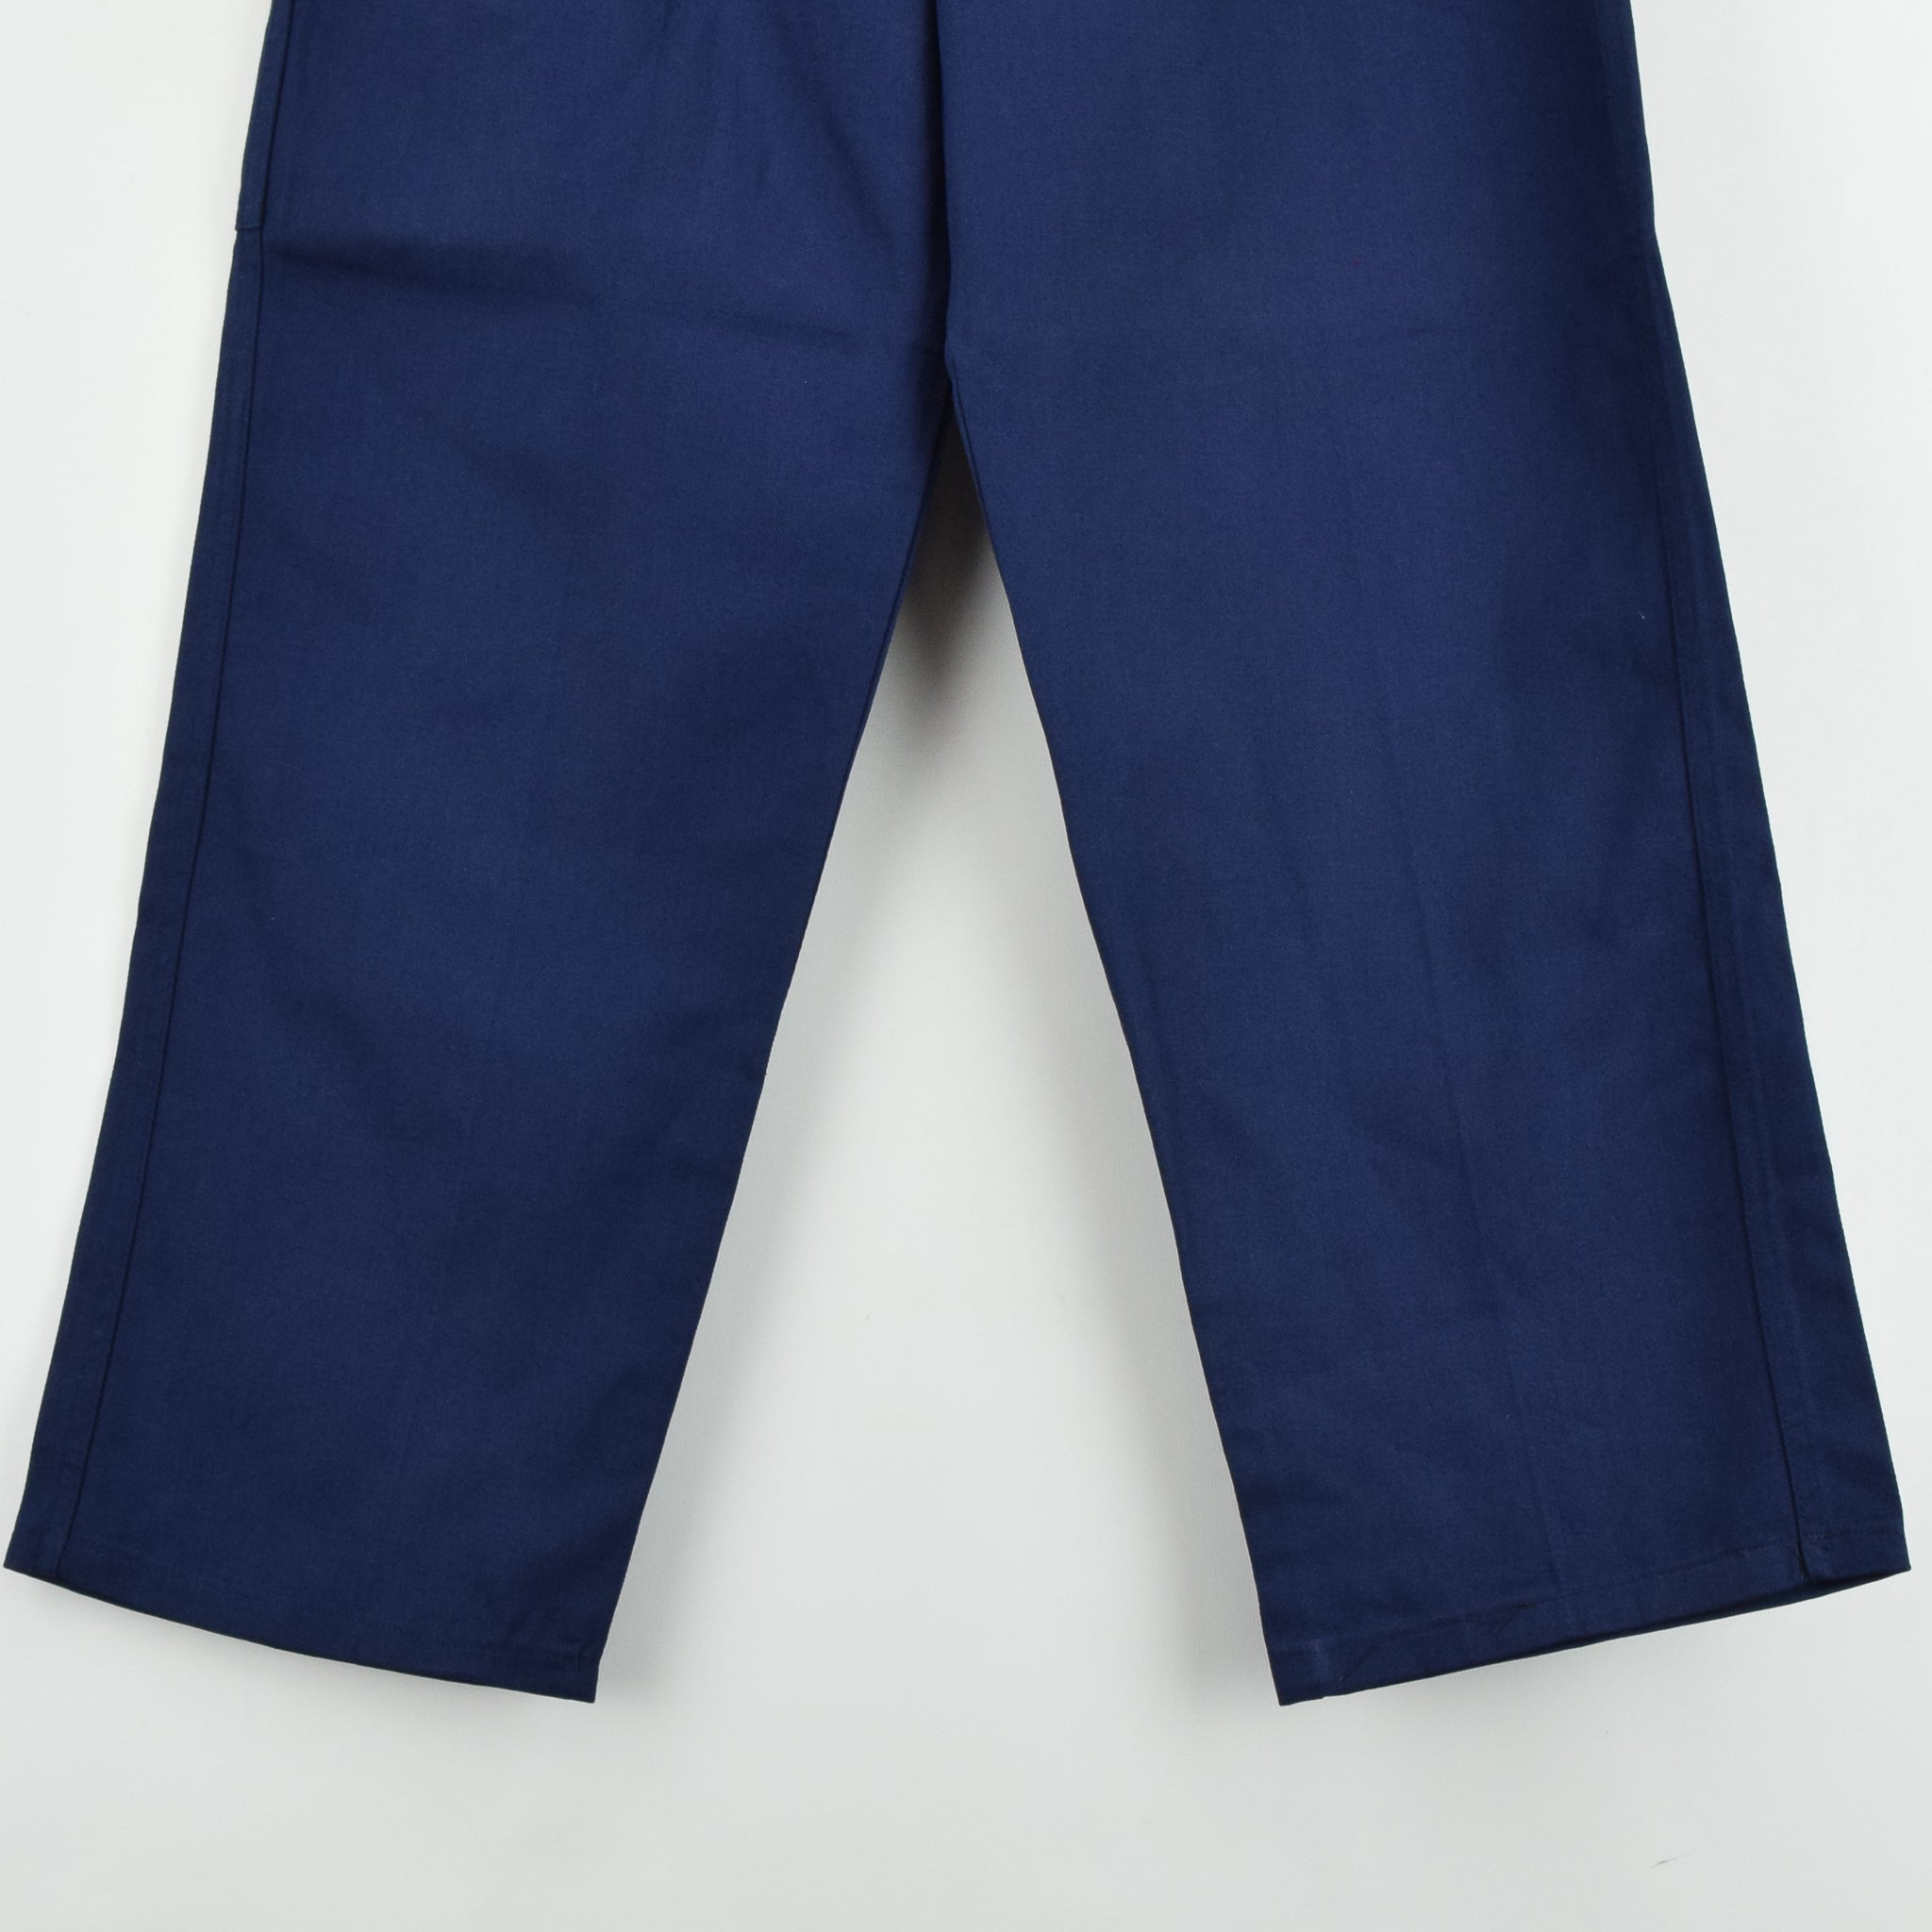 Vintage Deadstock Blue French Style Work Utility Trousers Italy Made 30 W 28 L front hem